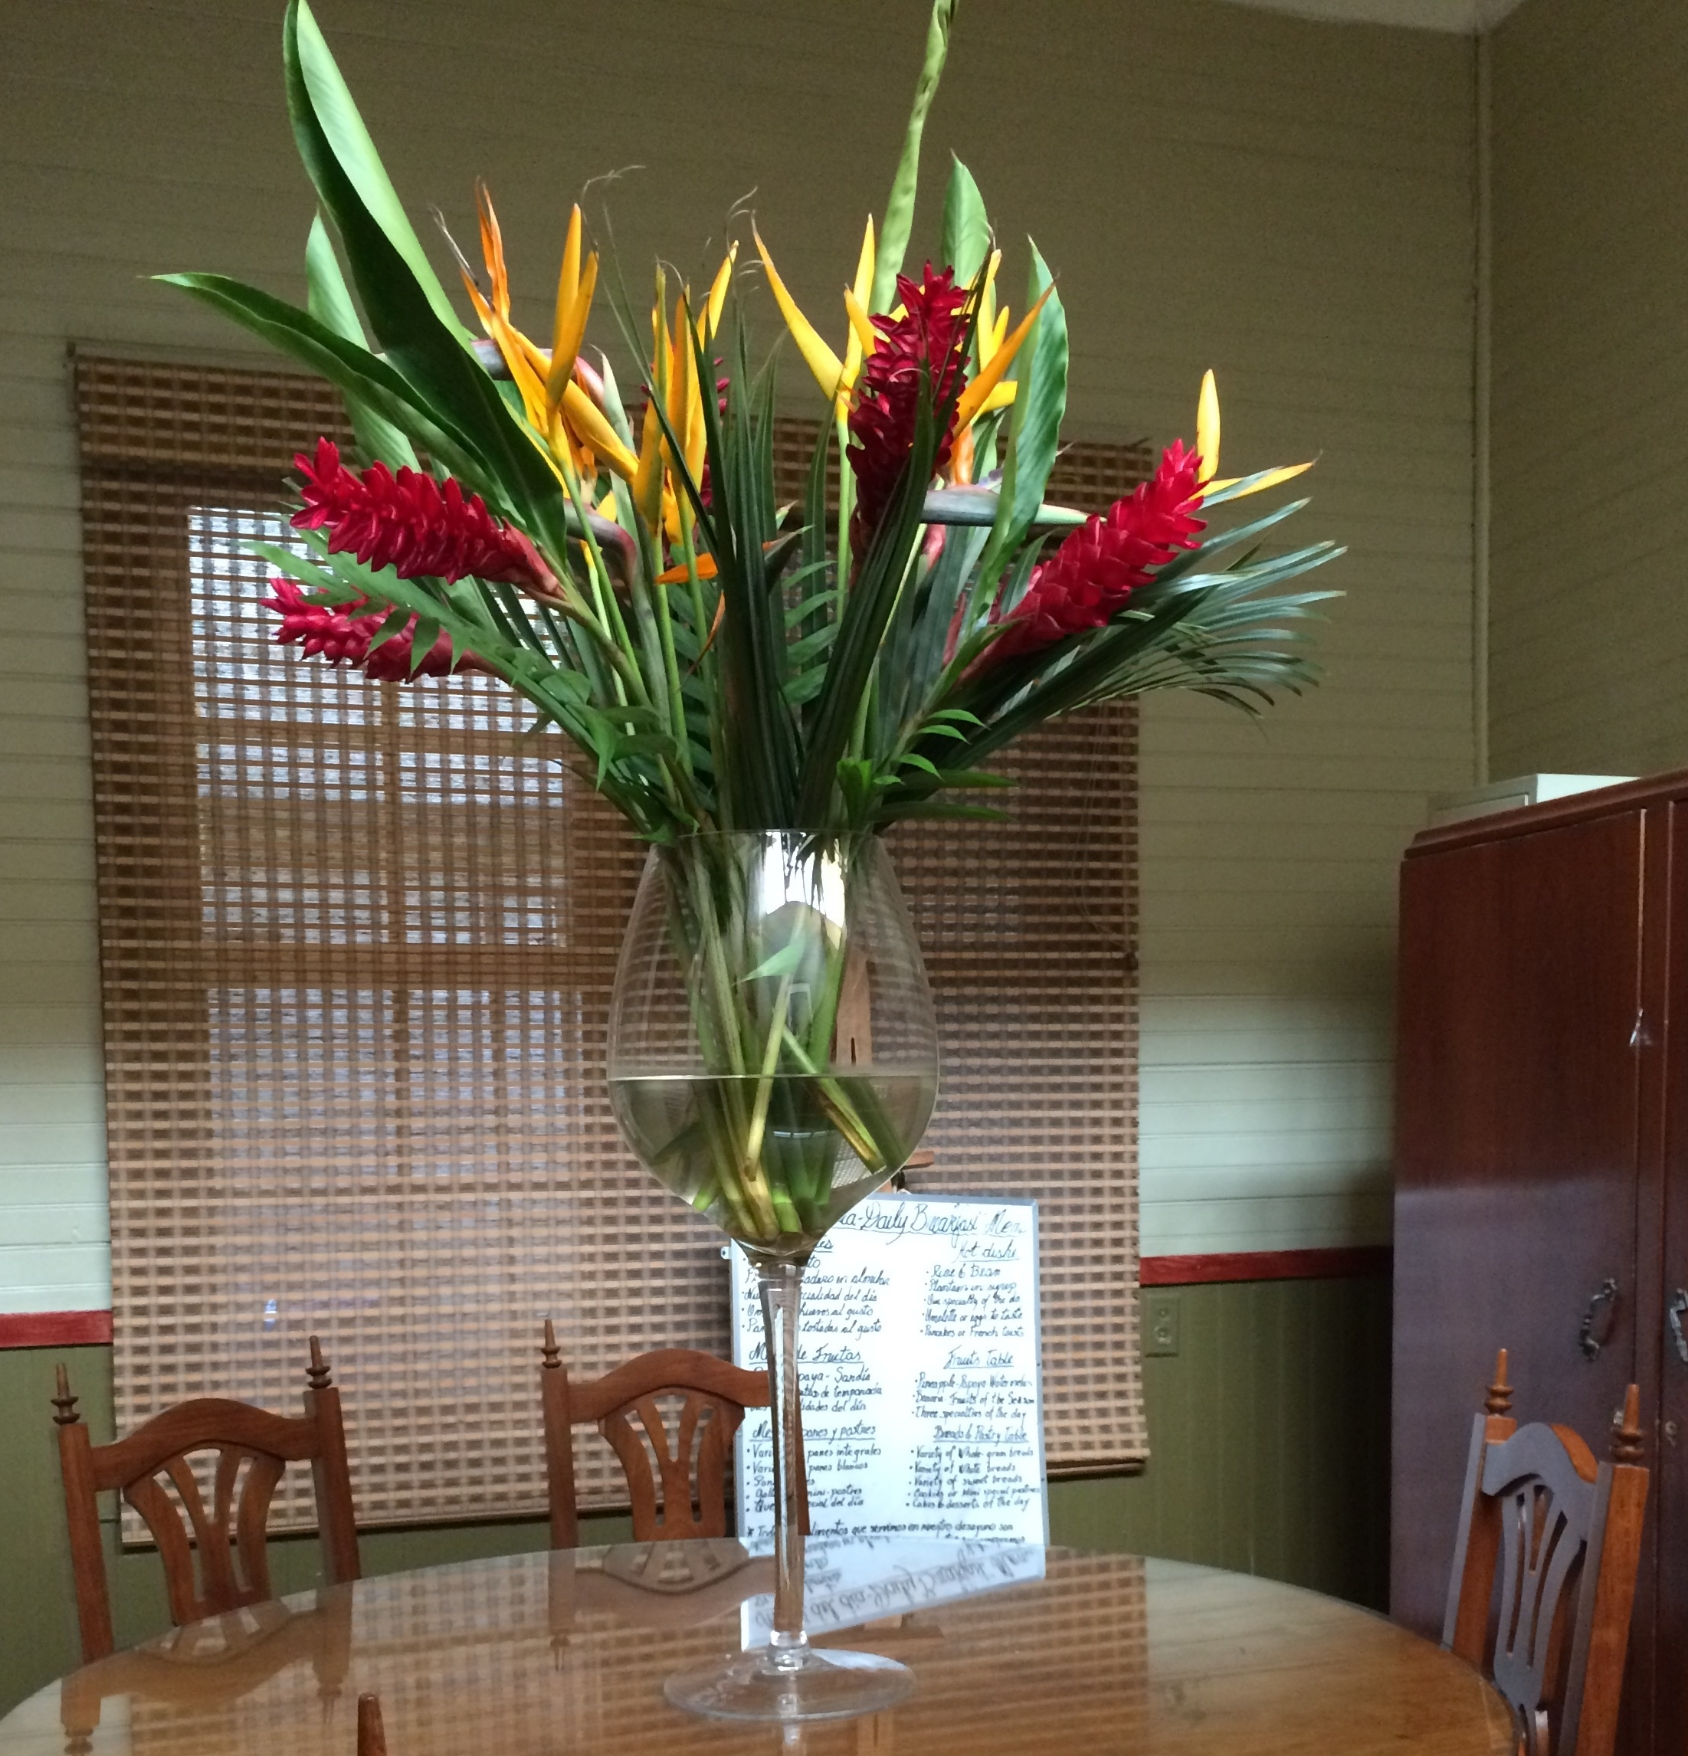 Enjoying this tropical floral display, I sat here for breakfast and chatted with a couple from France